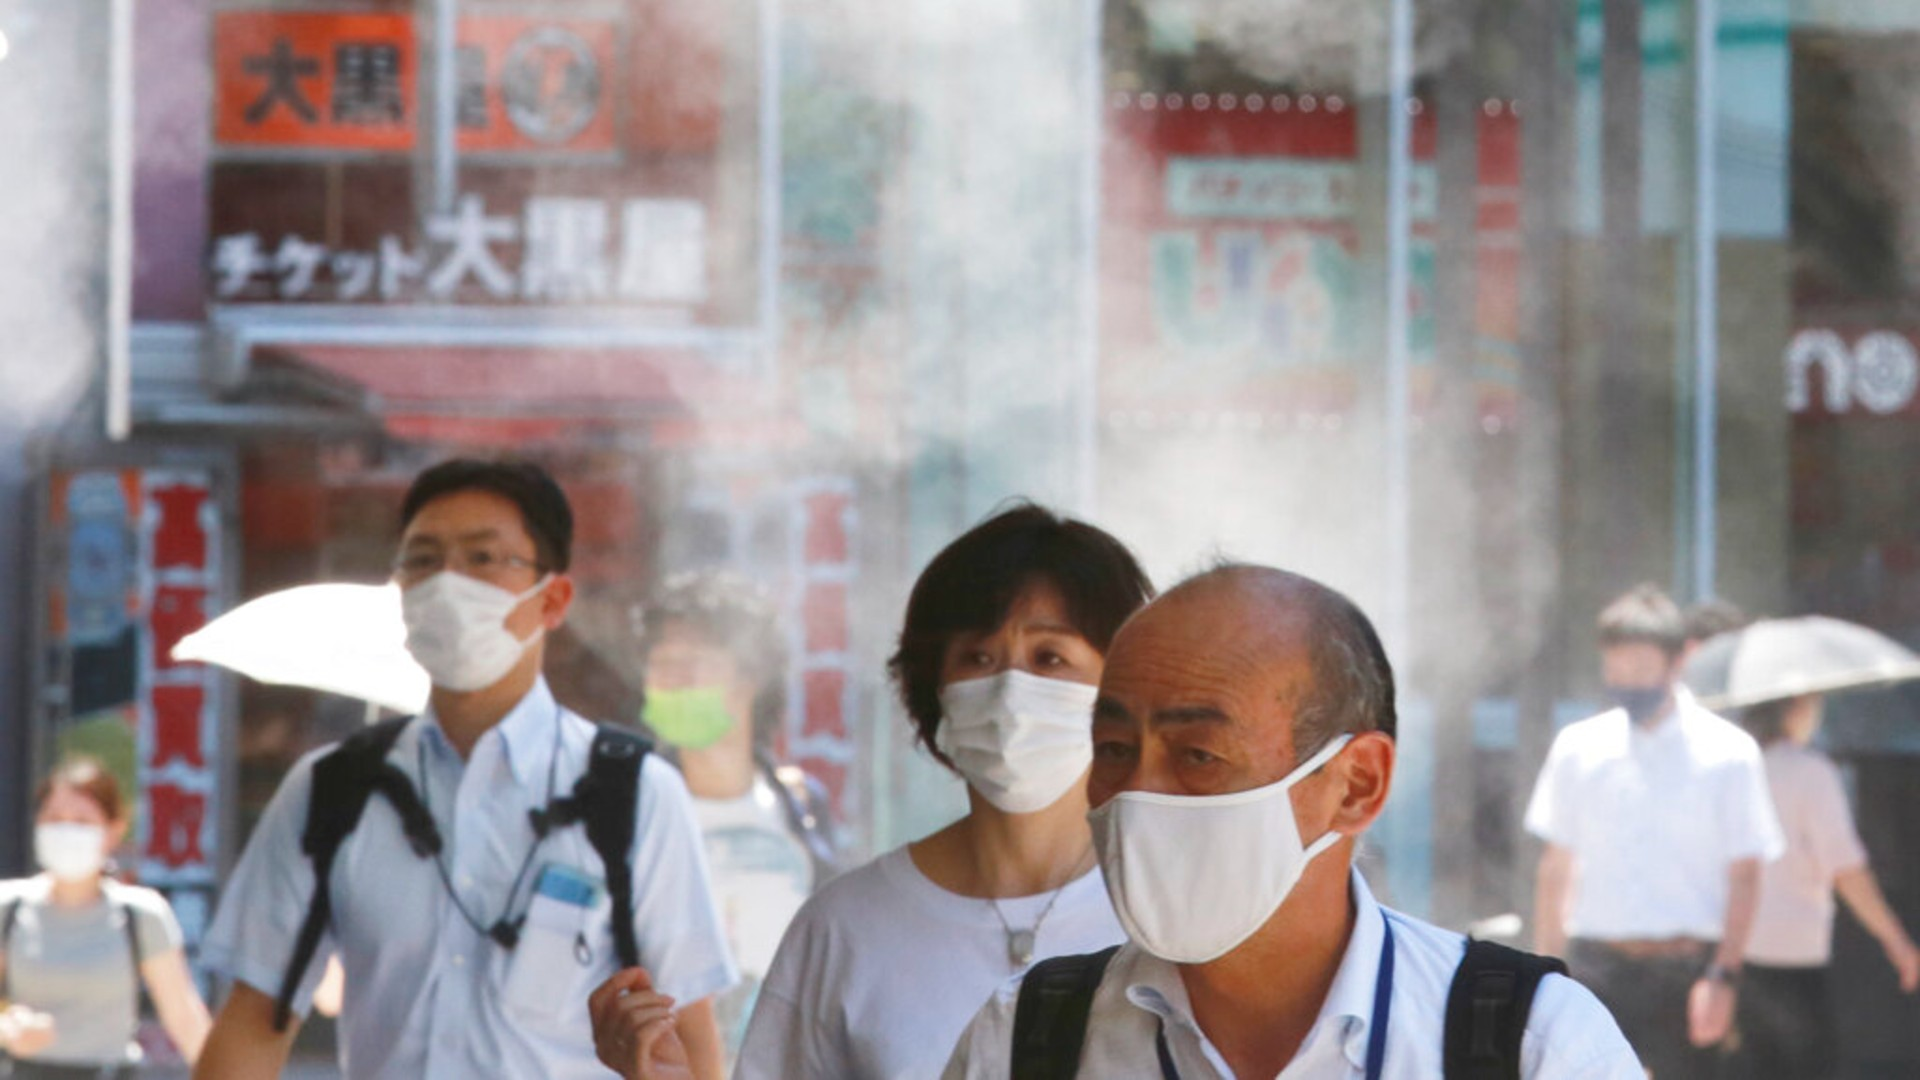 People wearing face masks to protect against the spread of the coronavirus walk under a water mist in Tokyo Thursday, Aug. 5, 2021. (AP Photo/Koji Sasahara)